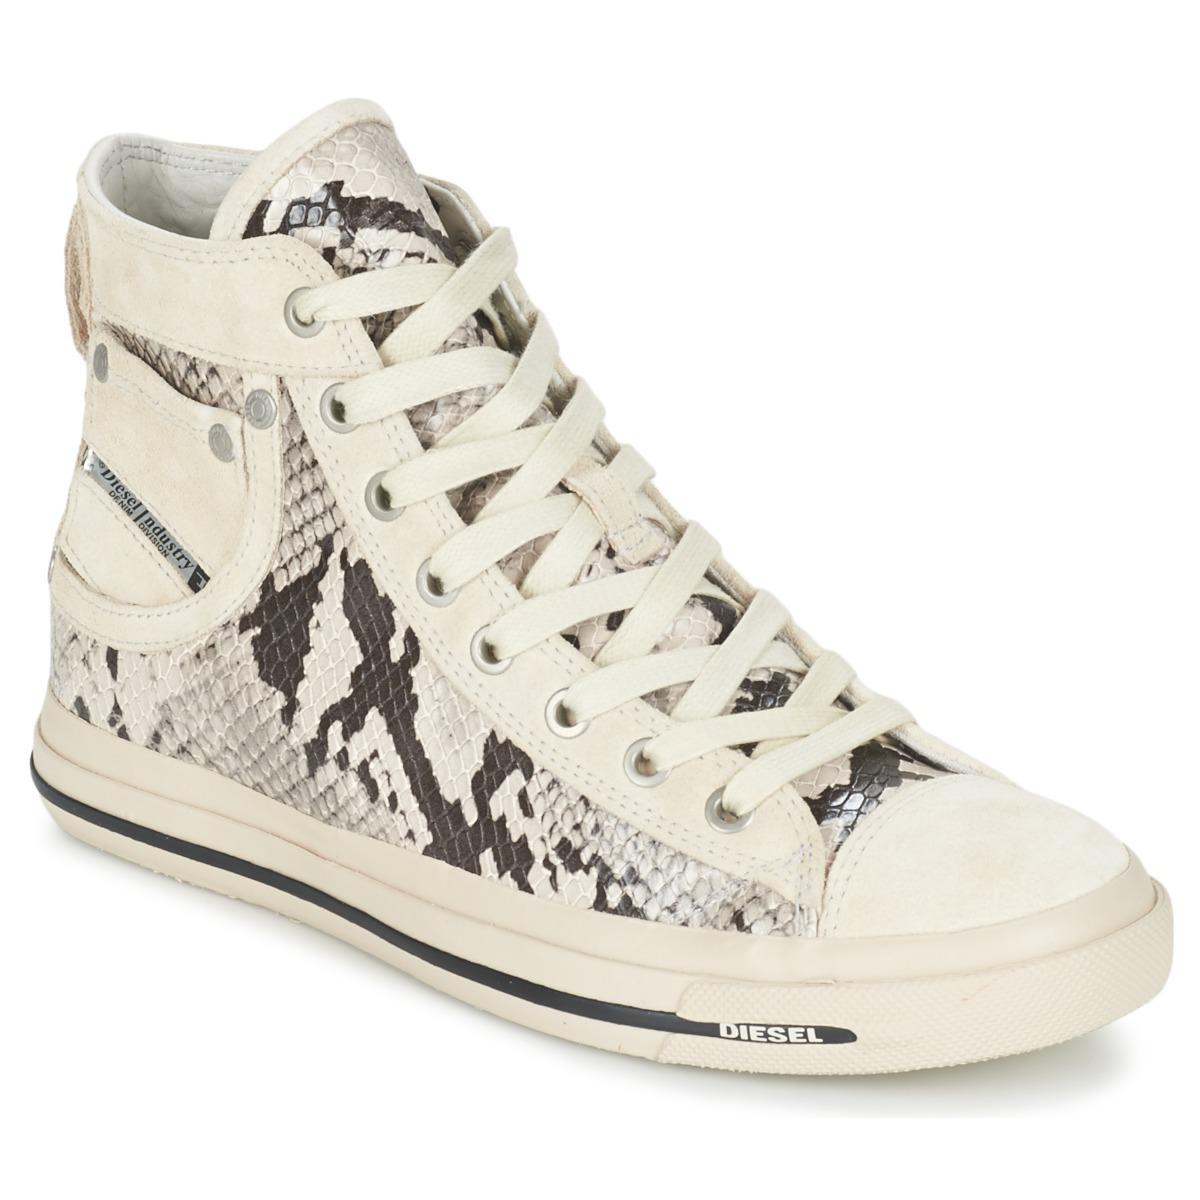 Free Shipping Shopping Online Diesel Exposure IV women's Shoes (High-top Trainers) in Clearance Finishline Big Discount For Sale bjVouRzp